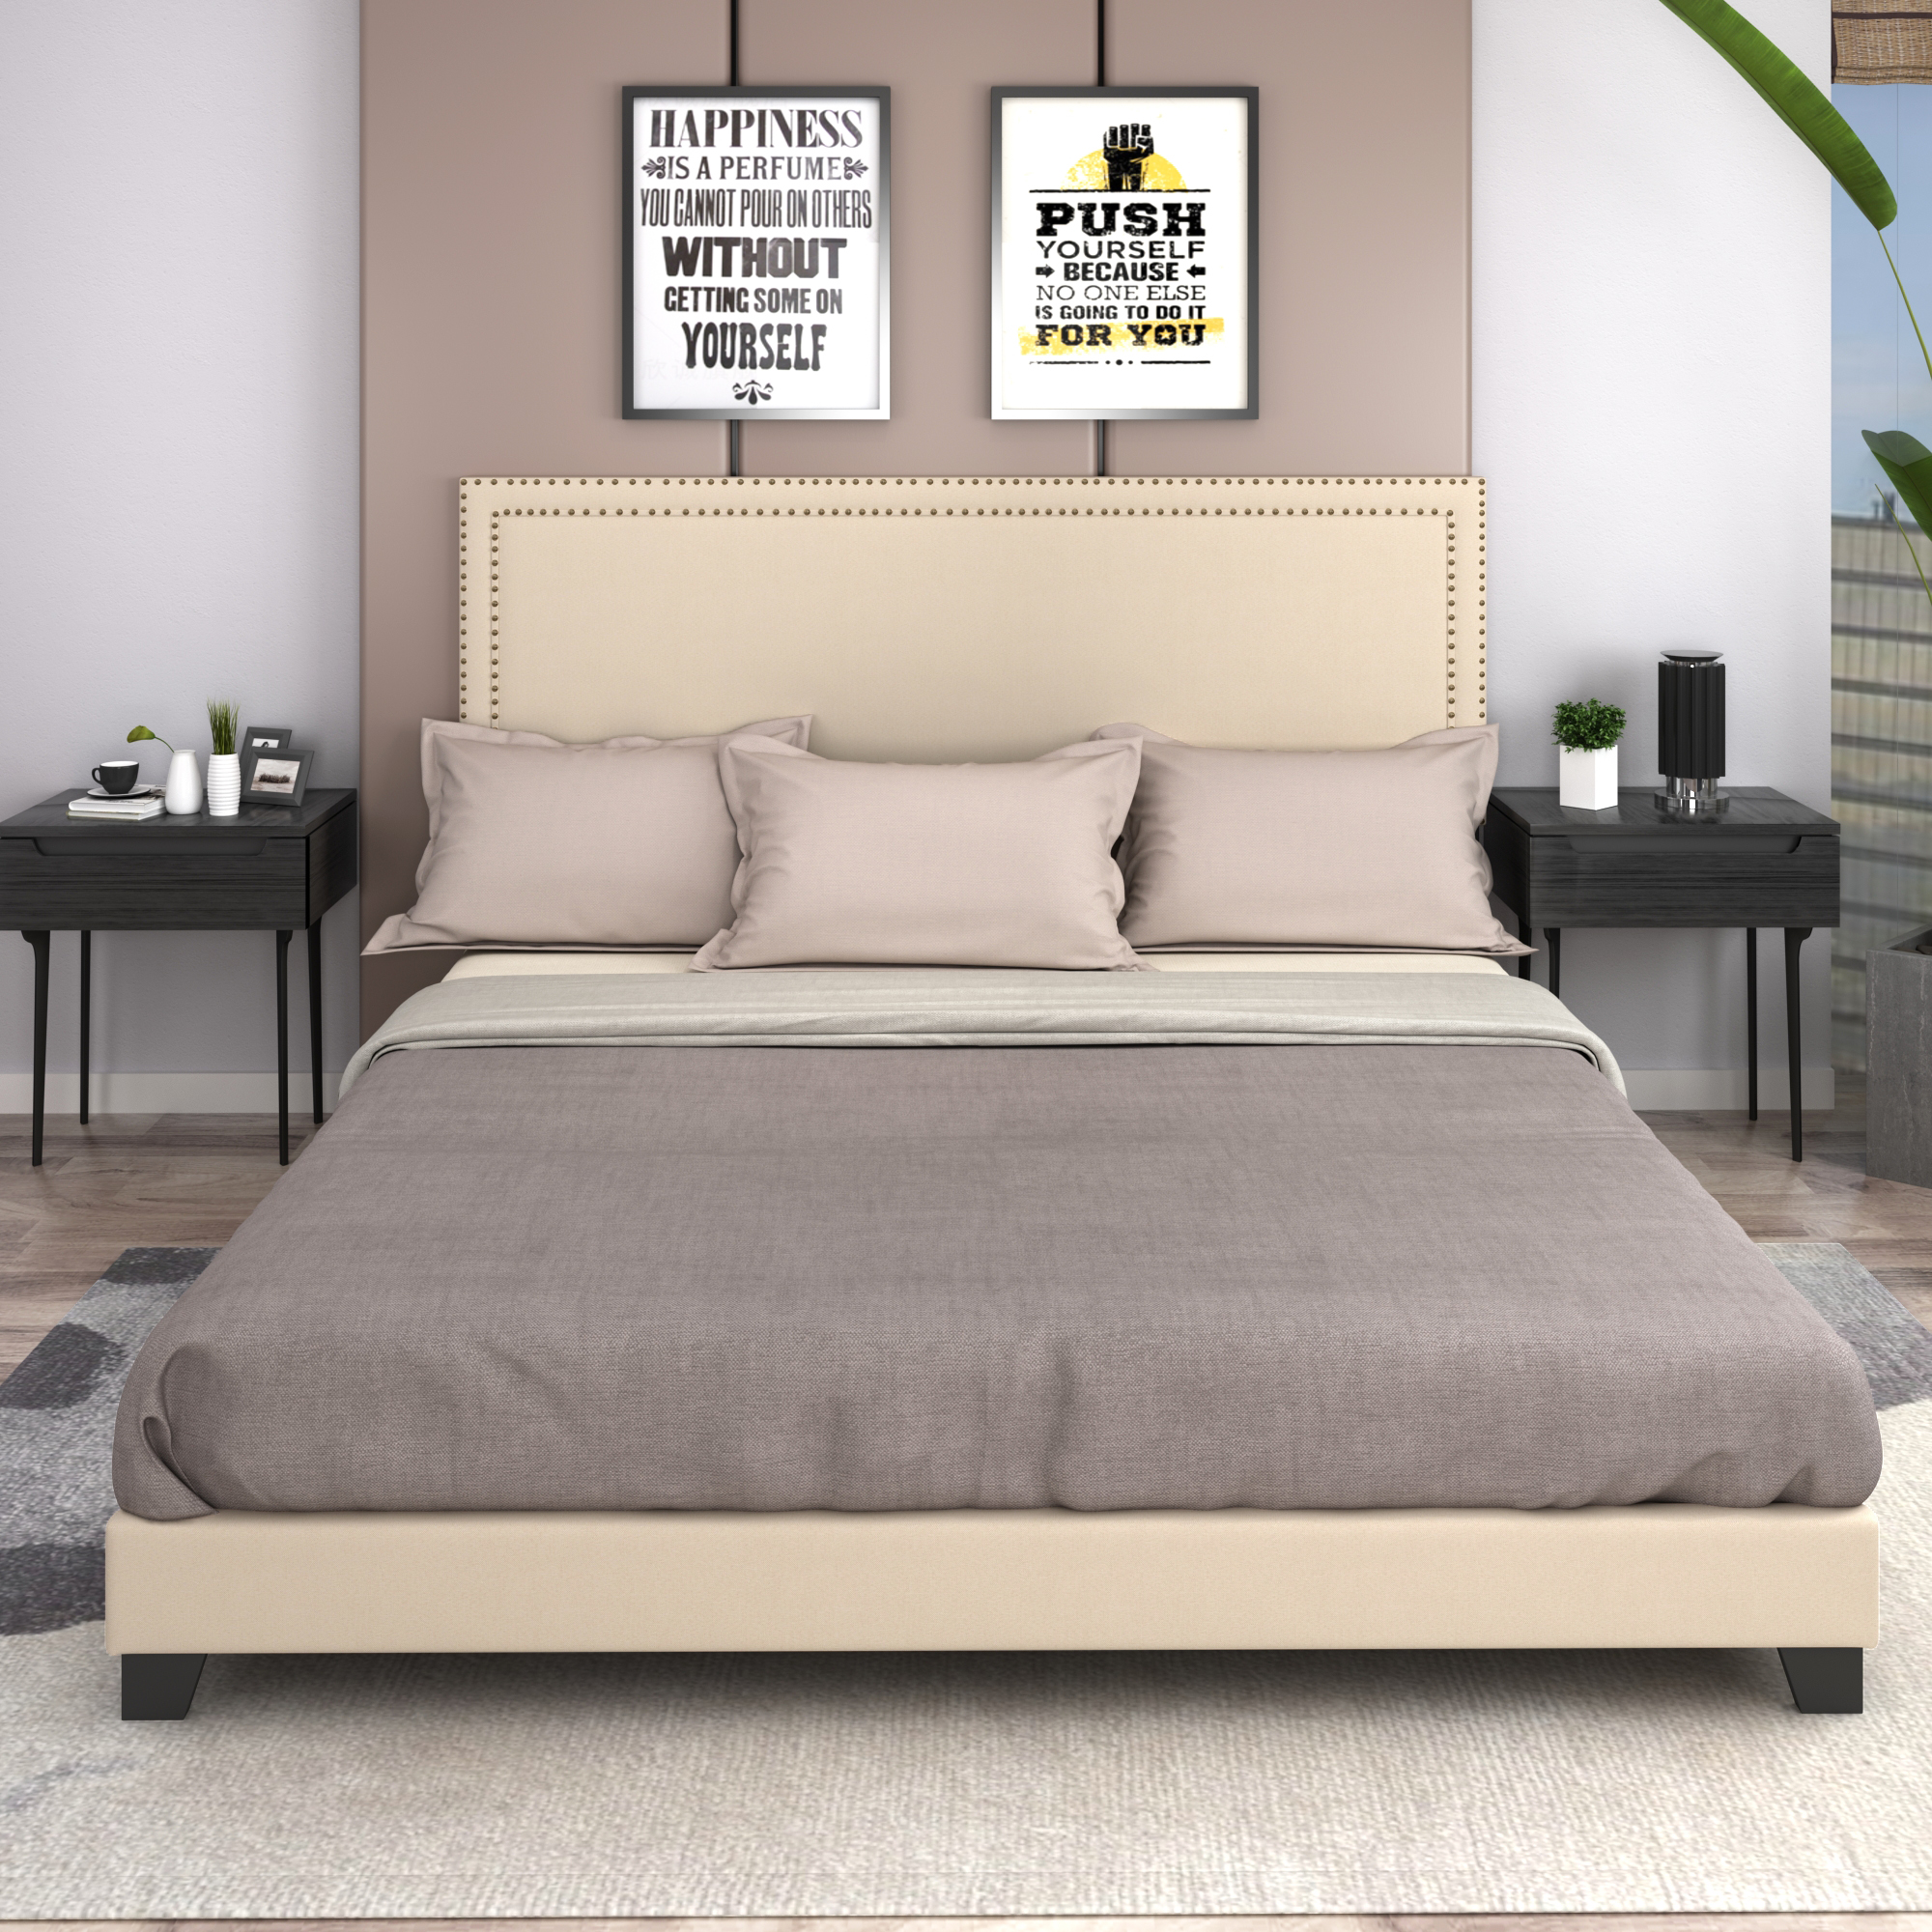 King Platform Bed Frame Urhomepro Modern Upholstered Platform Bed With Headboard Beige Heavy Duty Bed Frame With Wood Slat Support For Adults Teens Children Box Spring Required I7688 Walmart Com Walmart Com